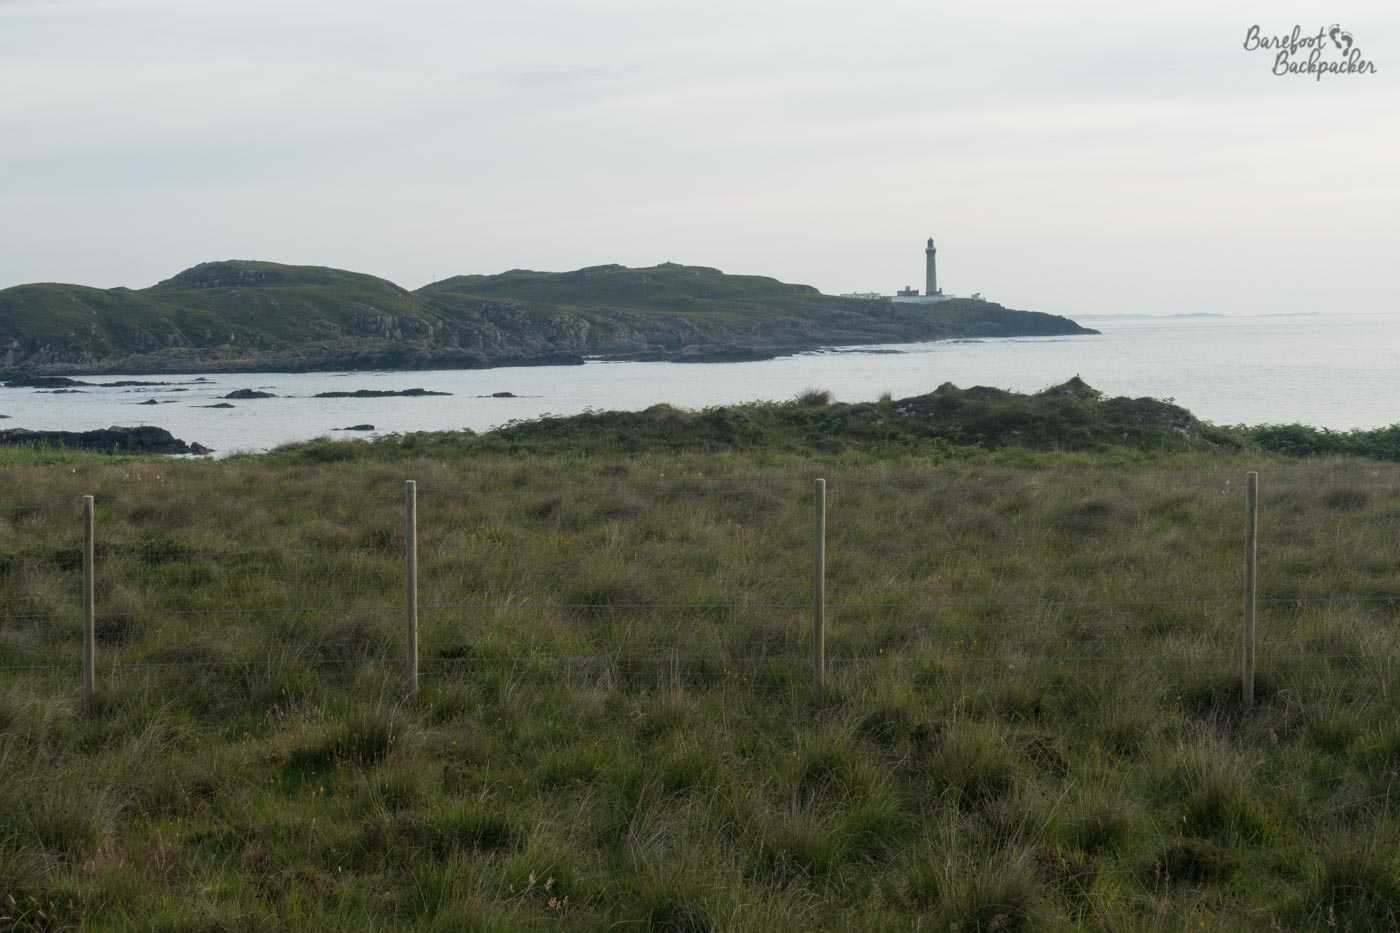 A wire fence is in the foreground. The green shrubbery land extends a little way after until it drops off a cliff. Beyond the following water inlet is a rocky outcrop, on top of which, at the far right end as it tapers into the sea, is a lighthouse, indistinctly grey at this far distance and in the slowly fading light.